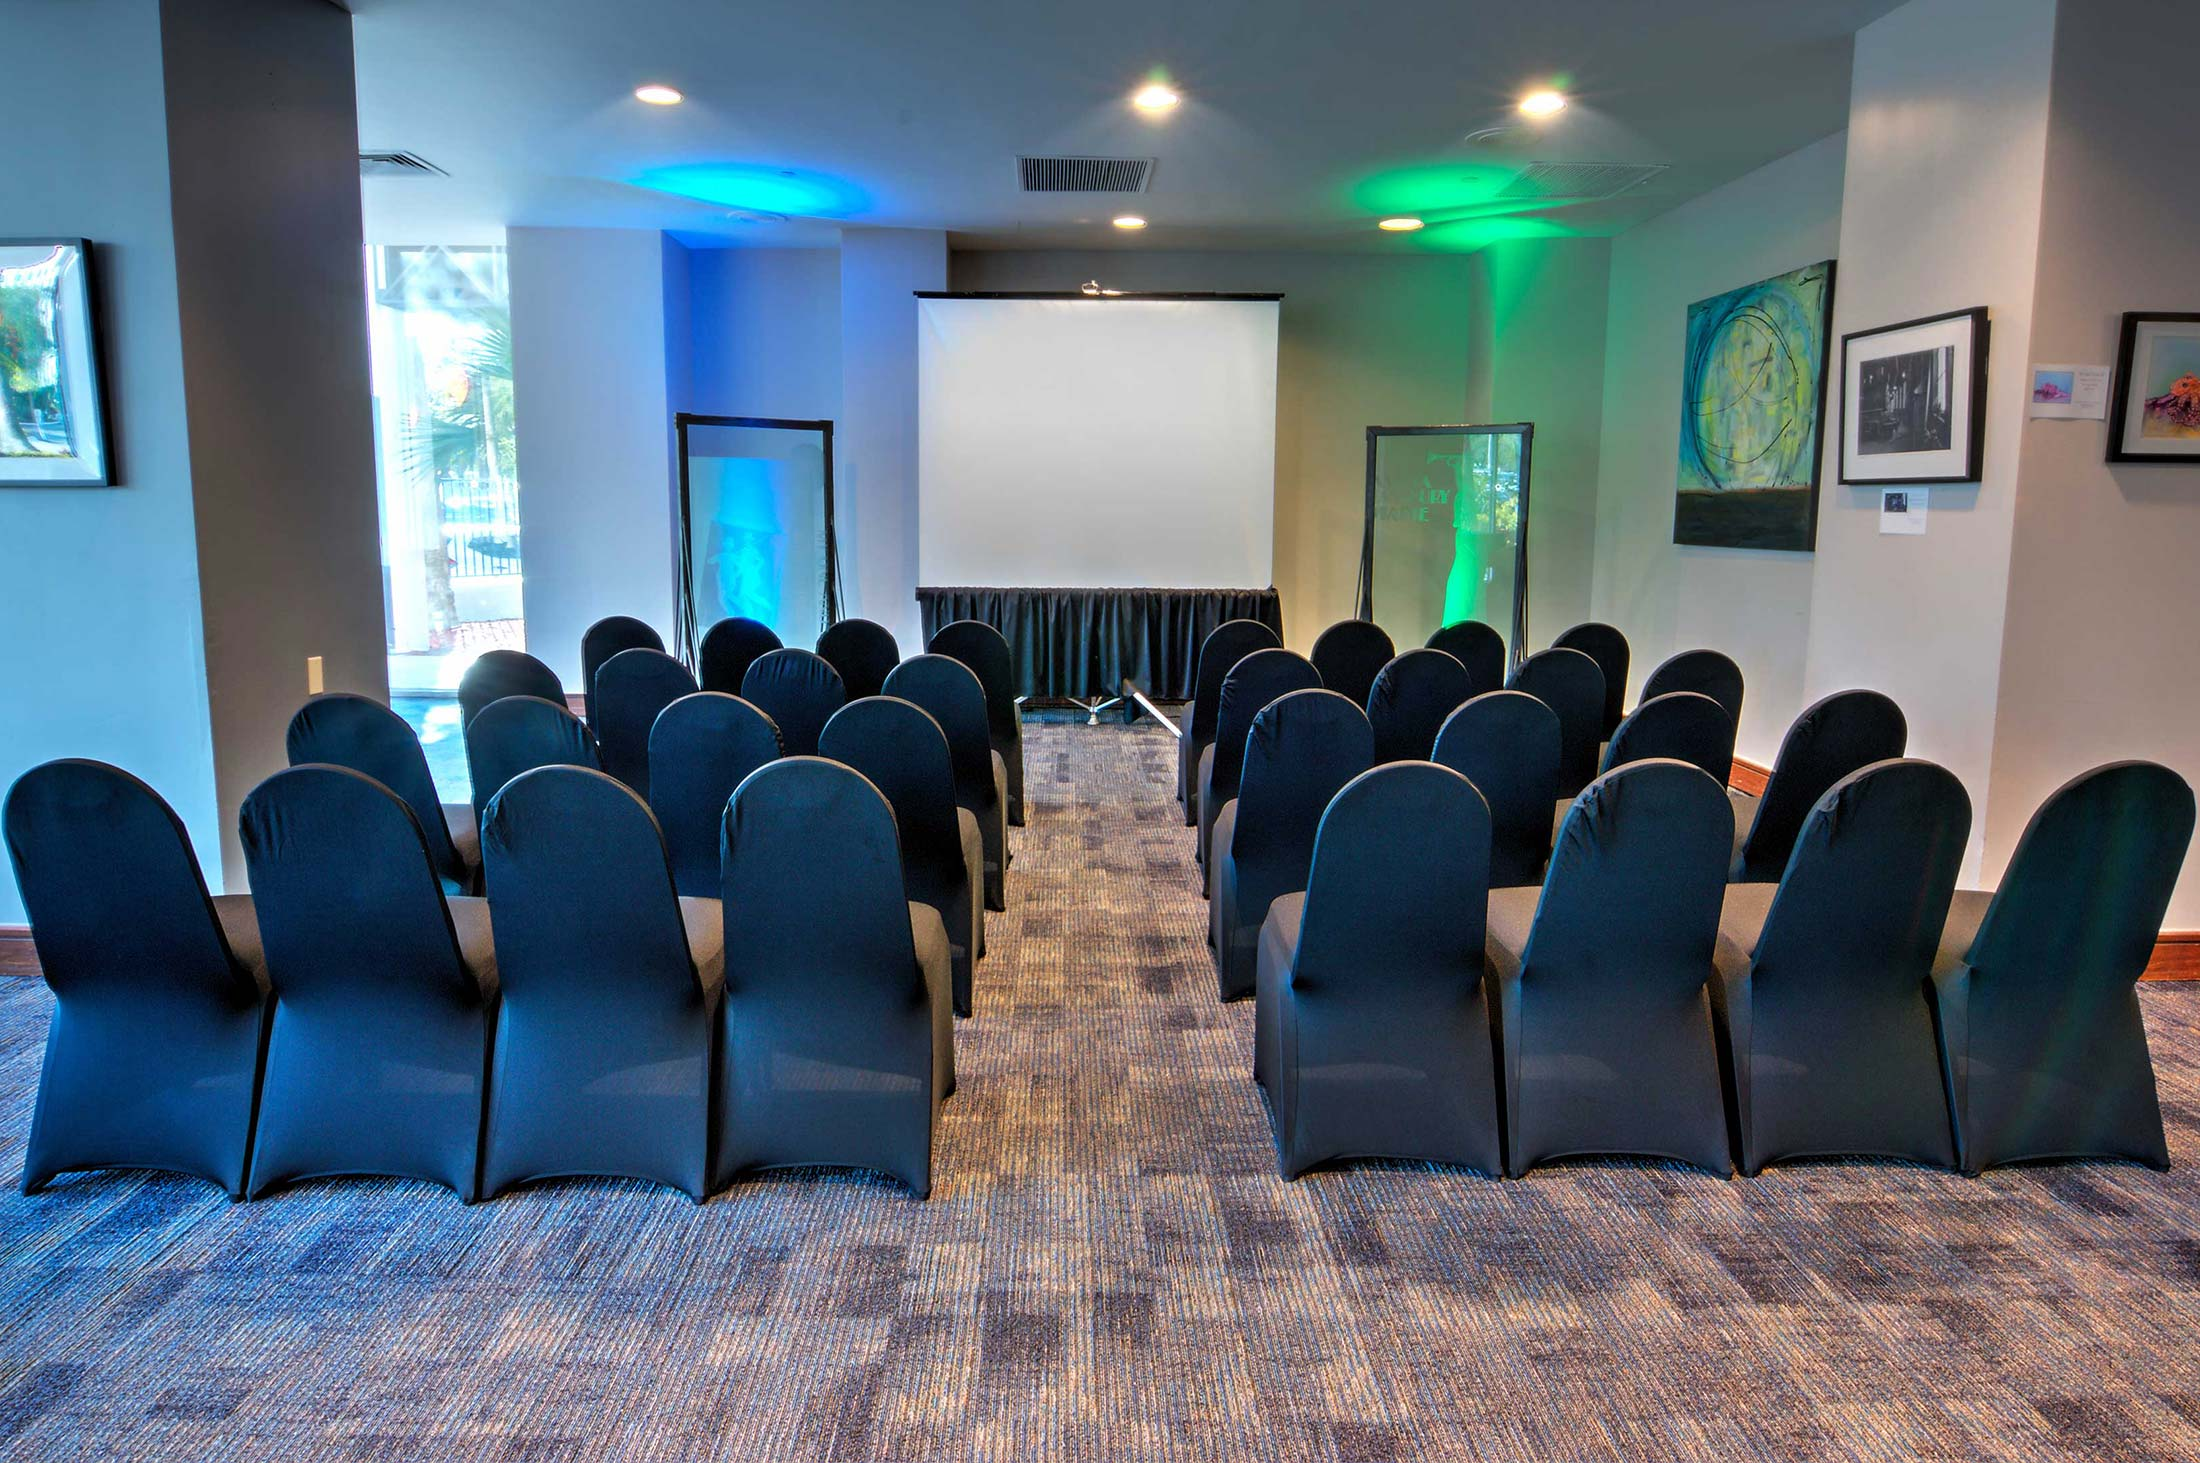 small theatre meeting arrangement with black chairs and projector screen